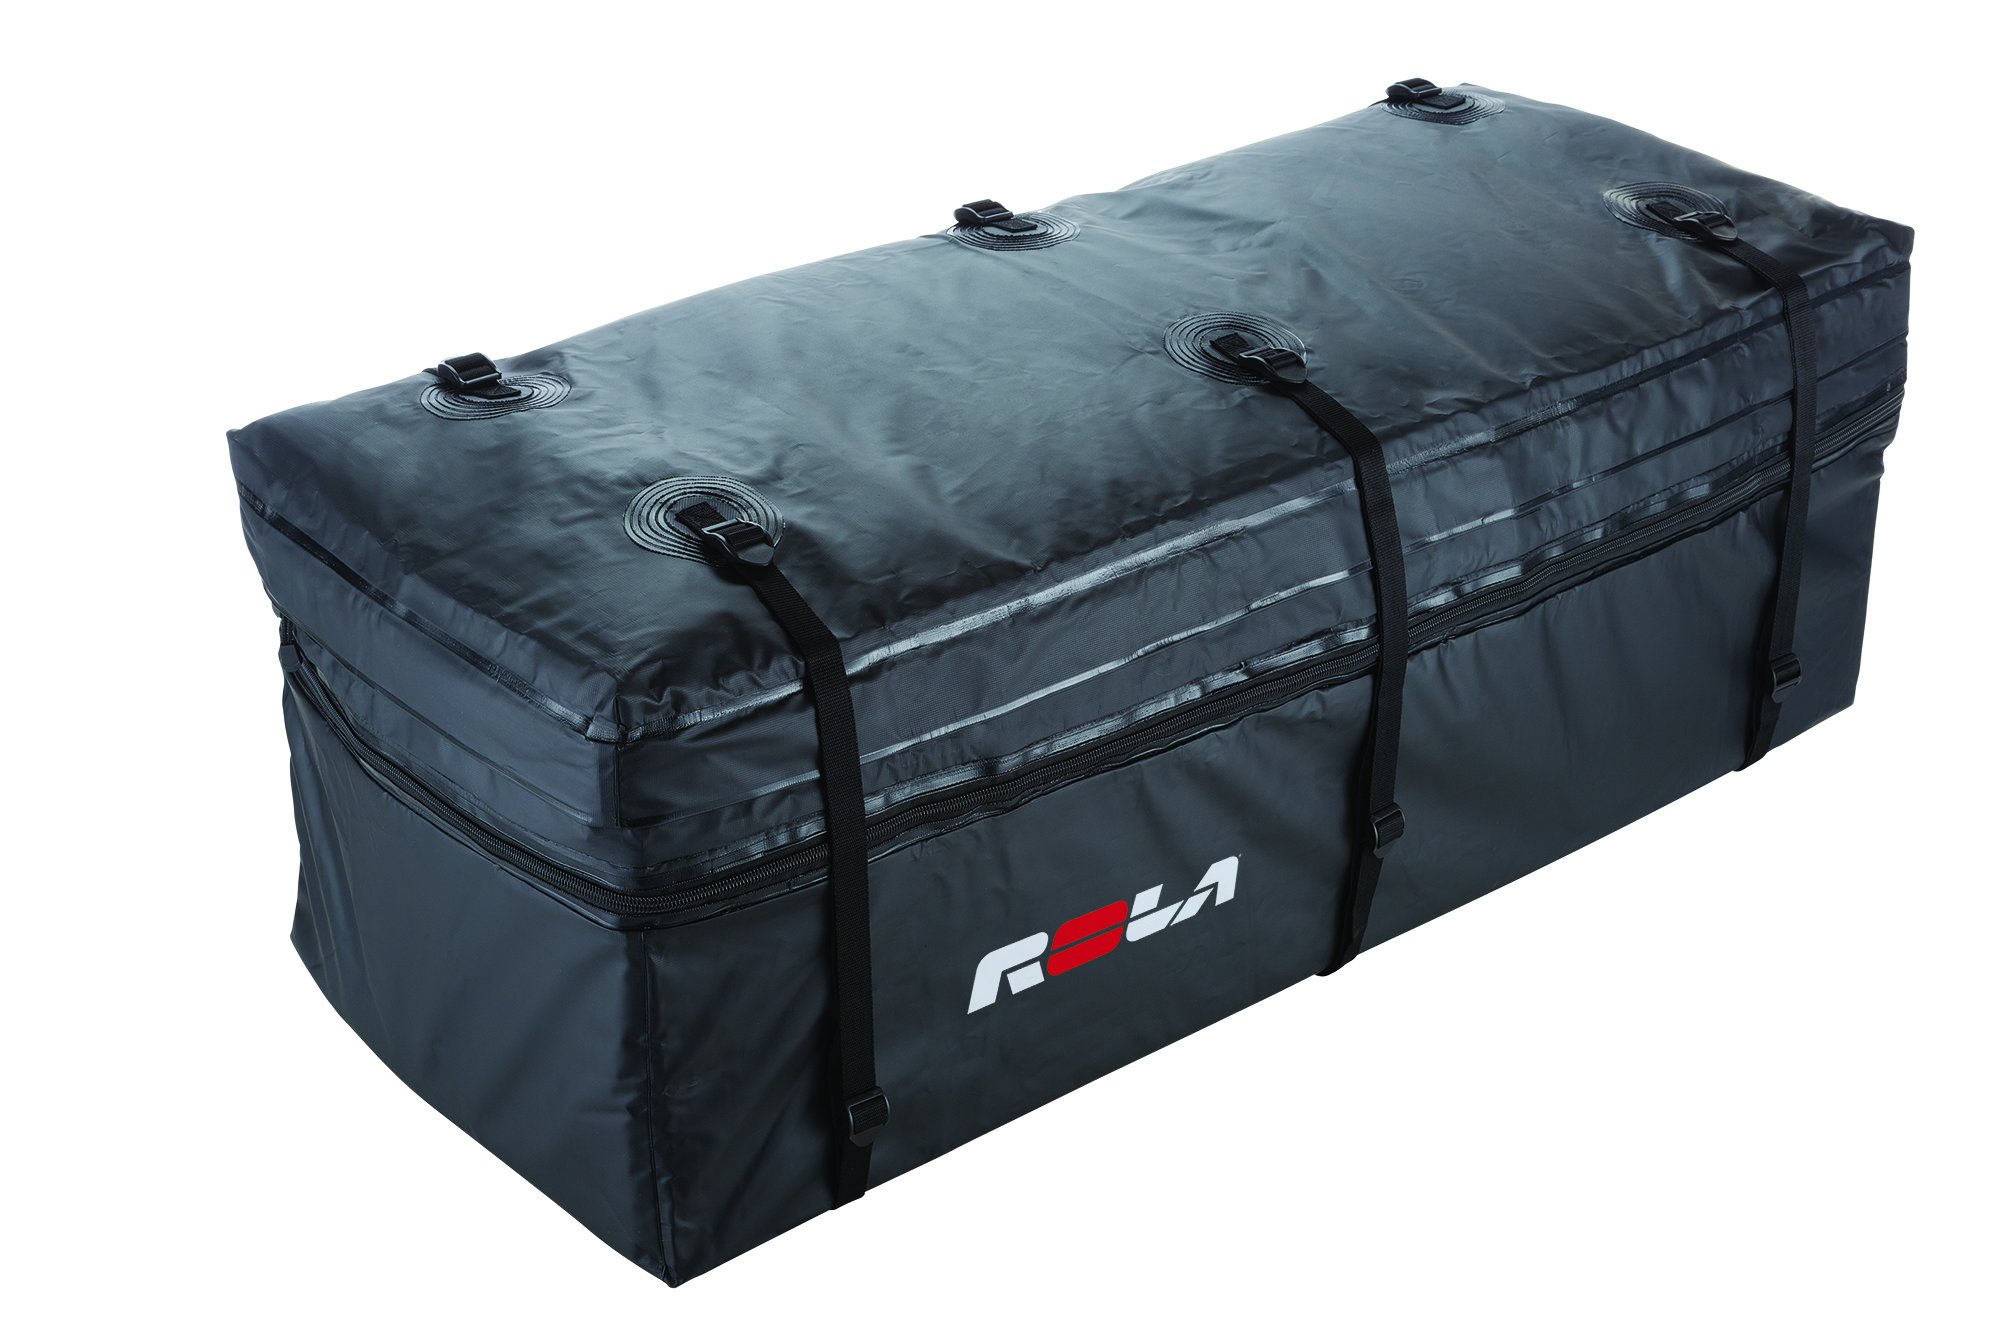 Rola 59102 Wallaroo Cargo Bag, Rainproof, Expandable Hitch Tray Carrier